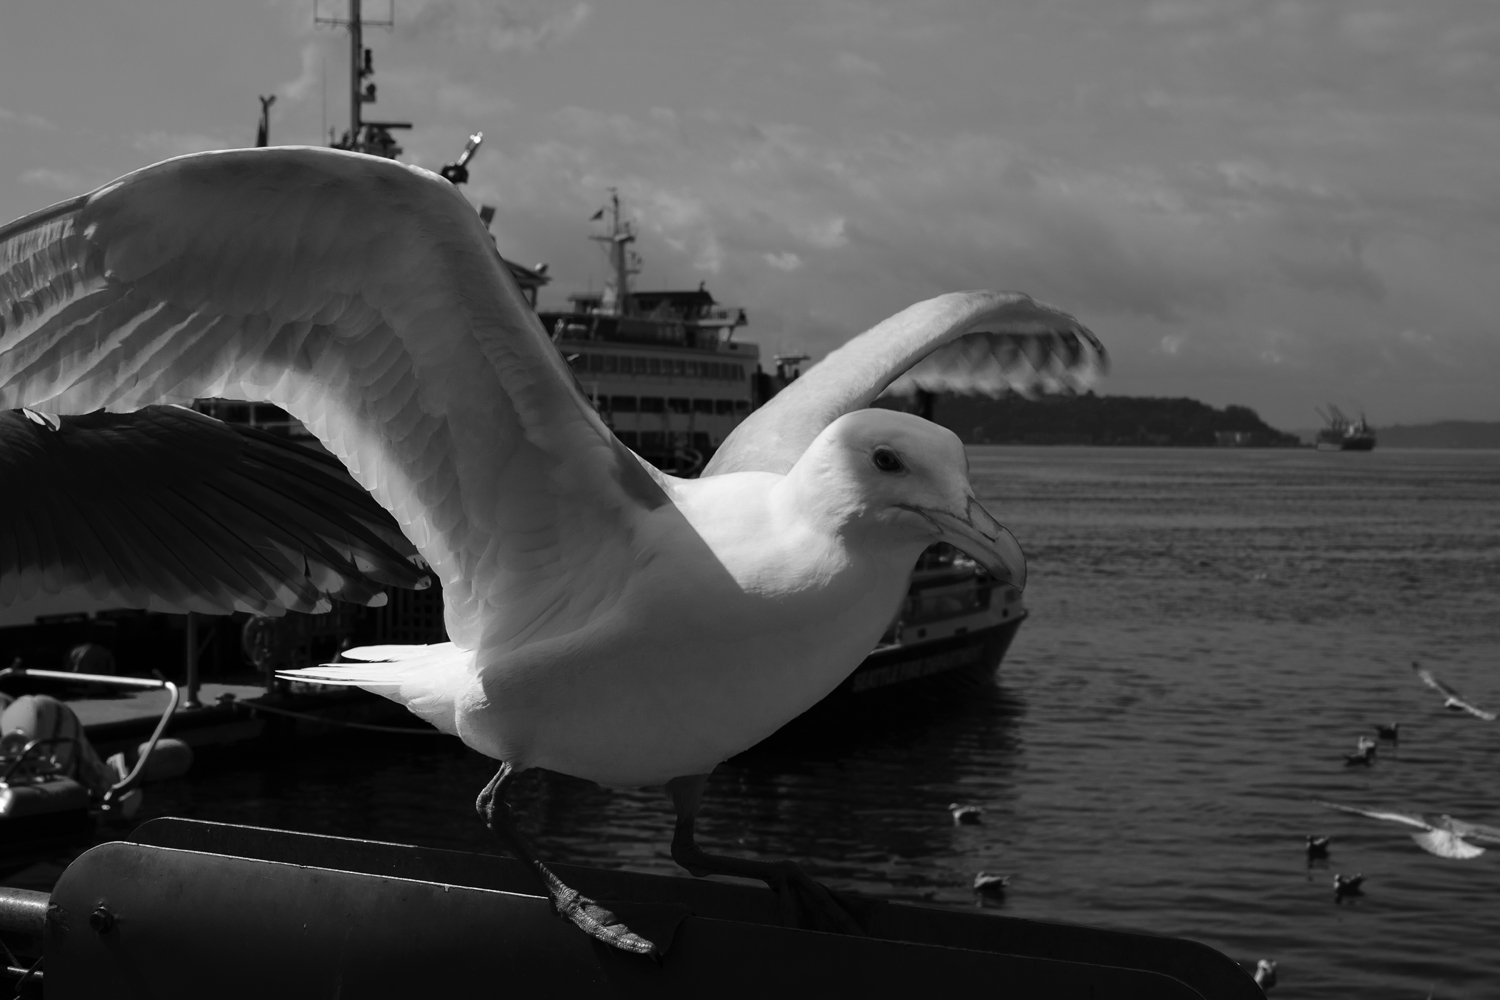 The Waterfront Gull